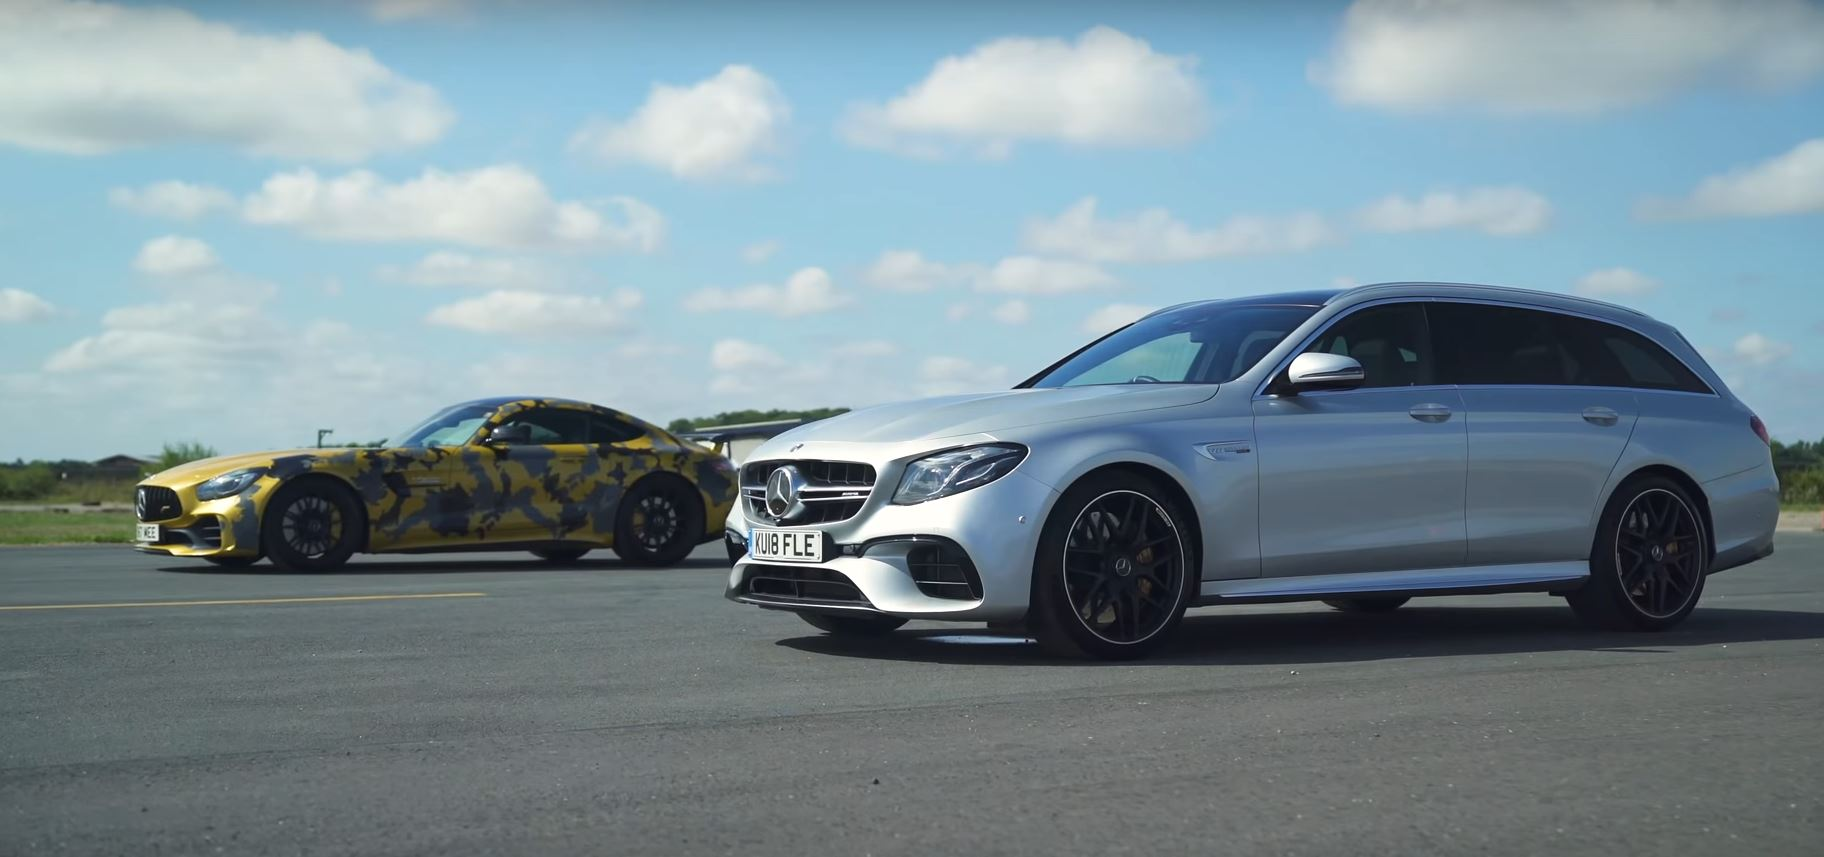 mercedes amg e63 s races amg gt r tuned by renntech. Black Bedroom Furniture Sets. Home Design Ideas